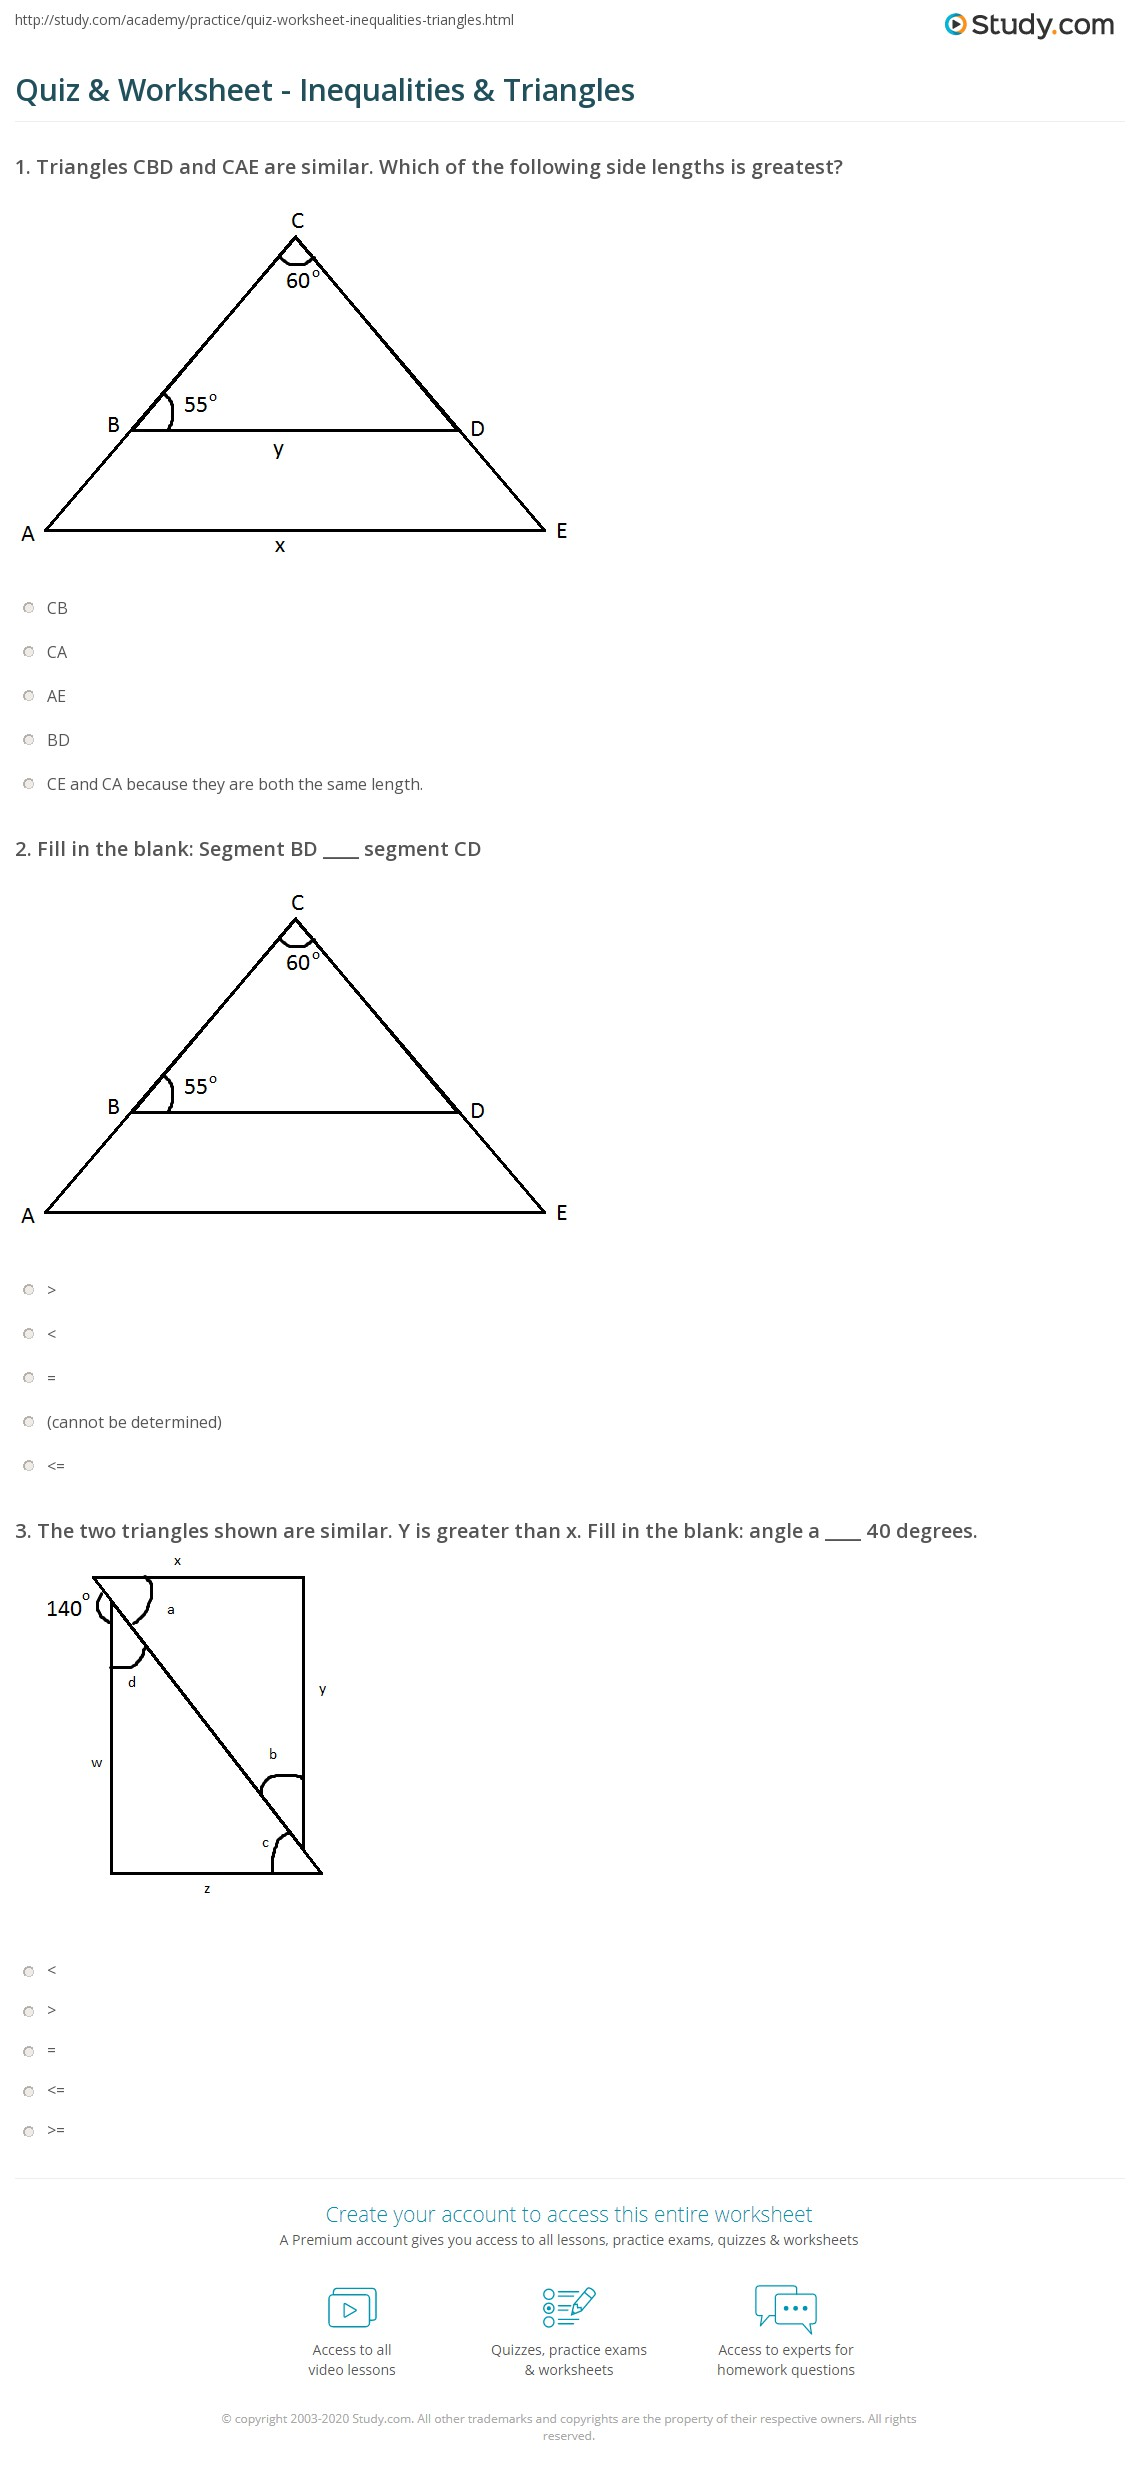 quiz worksheet inequalities triangles. Black Bedroom Furniture Sets. Home Design Ideas